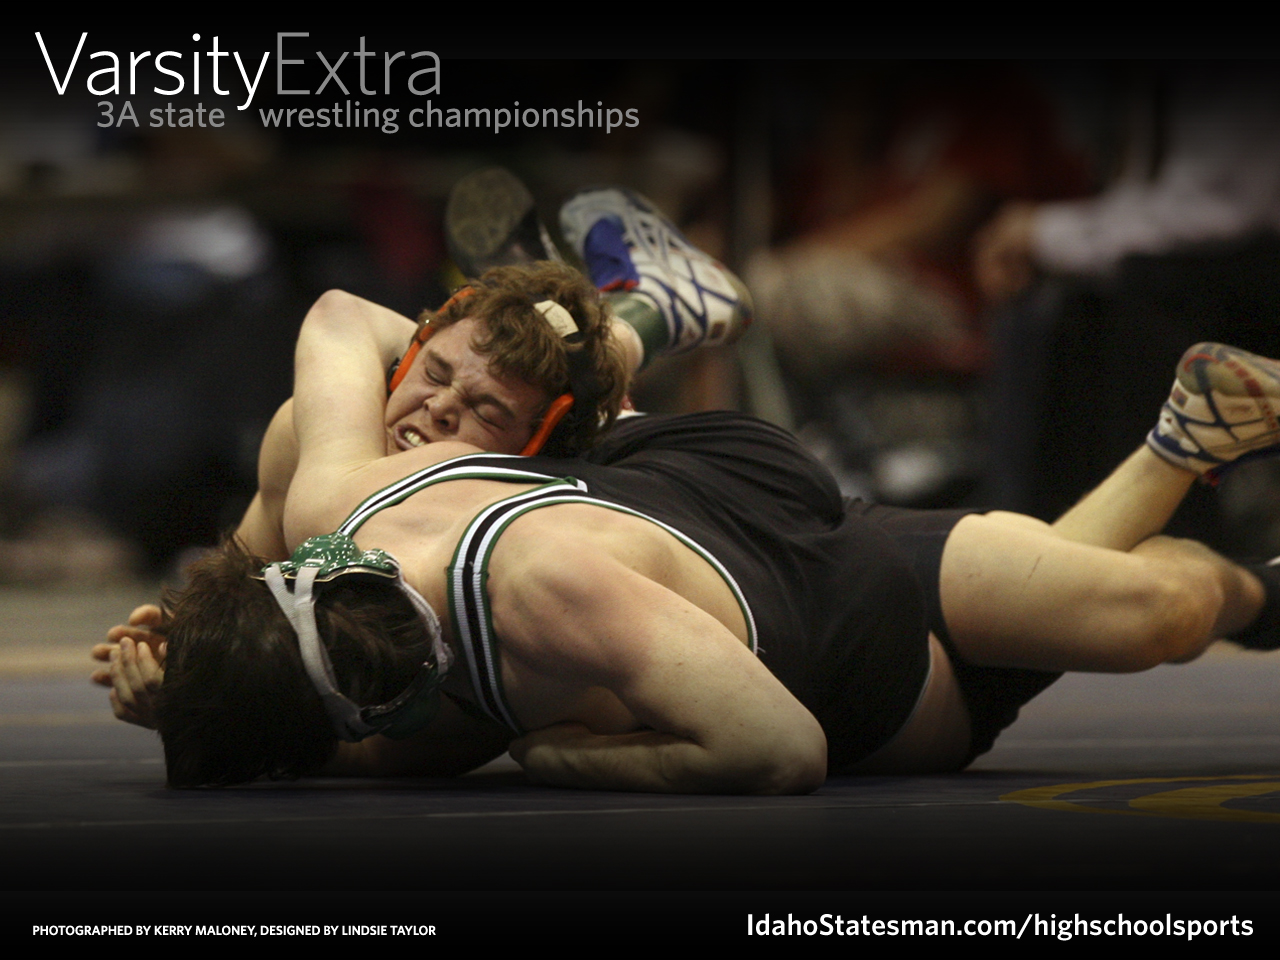 Download our state wrestling wallpaper 1280x960